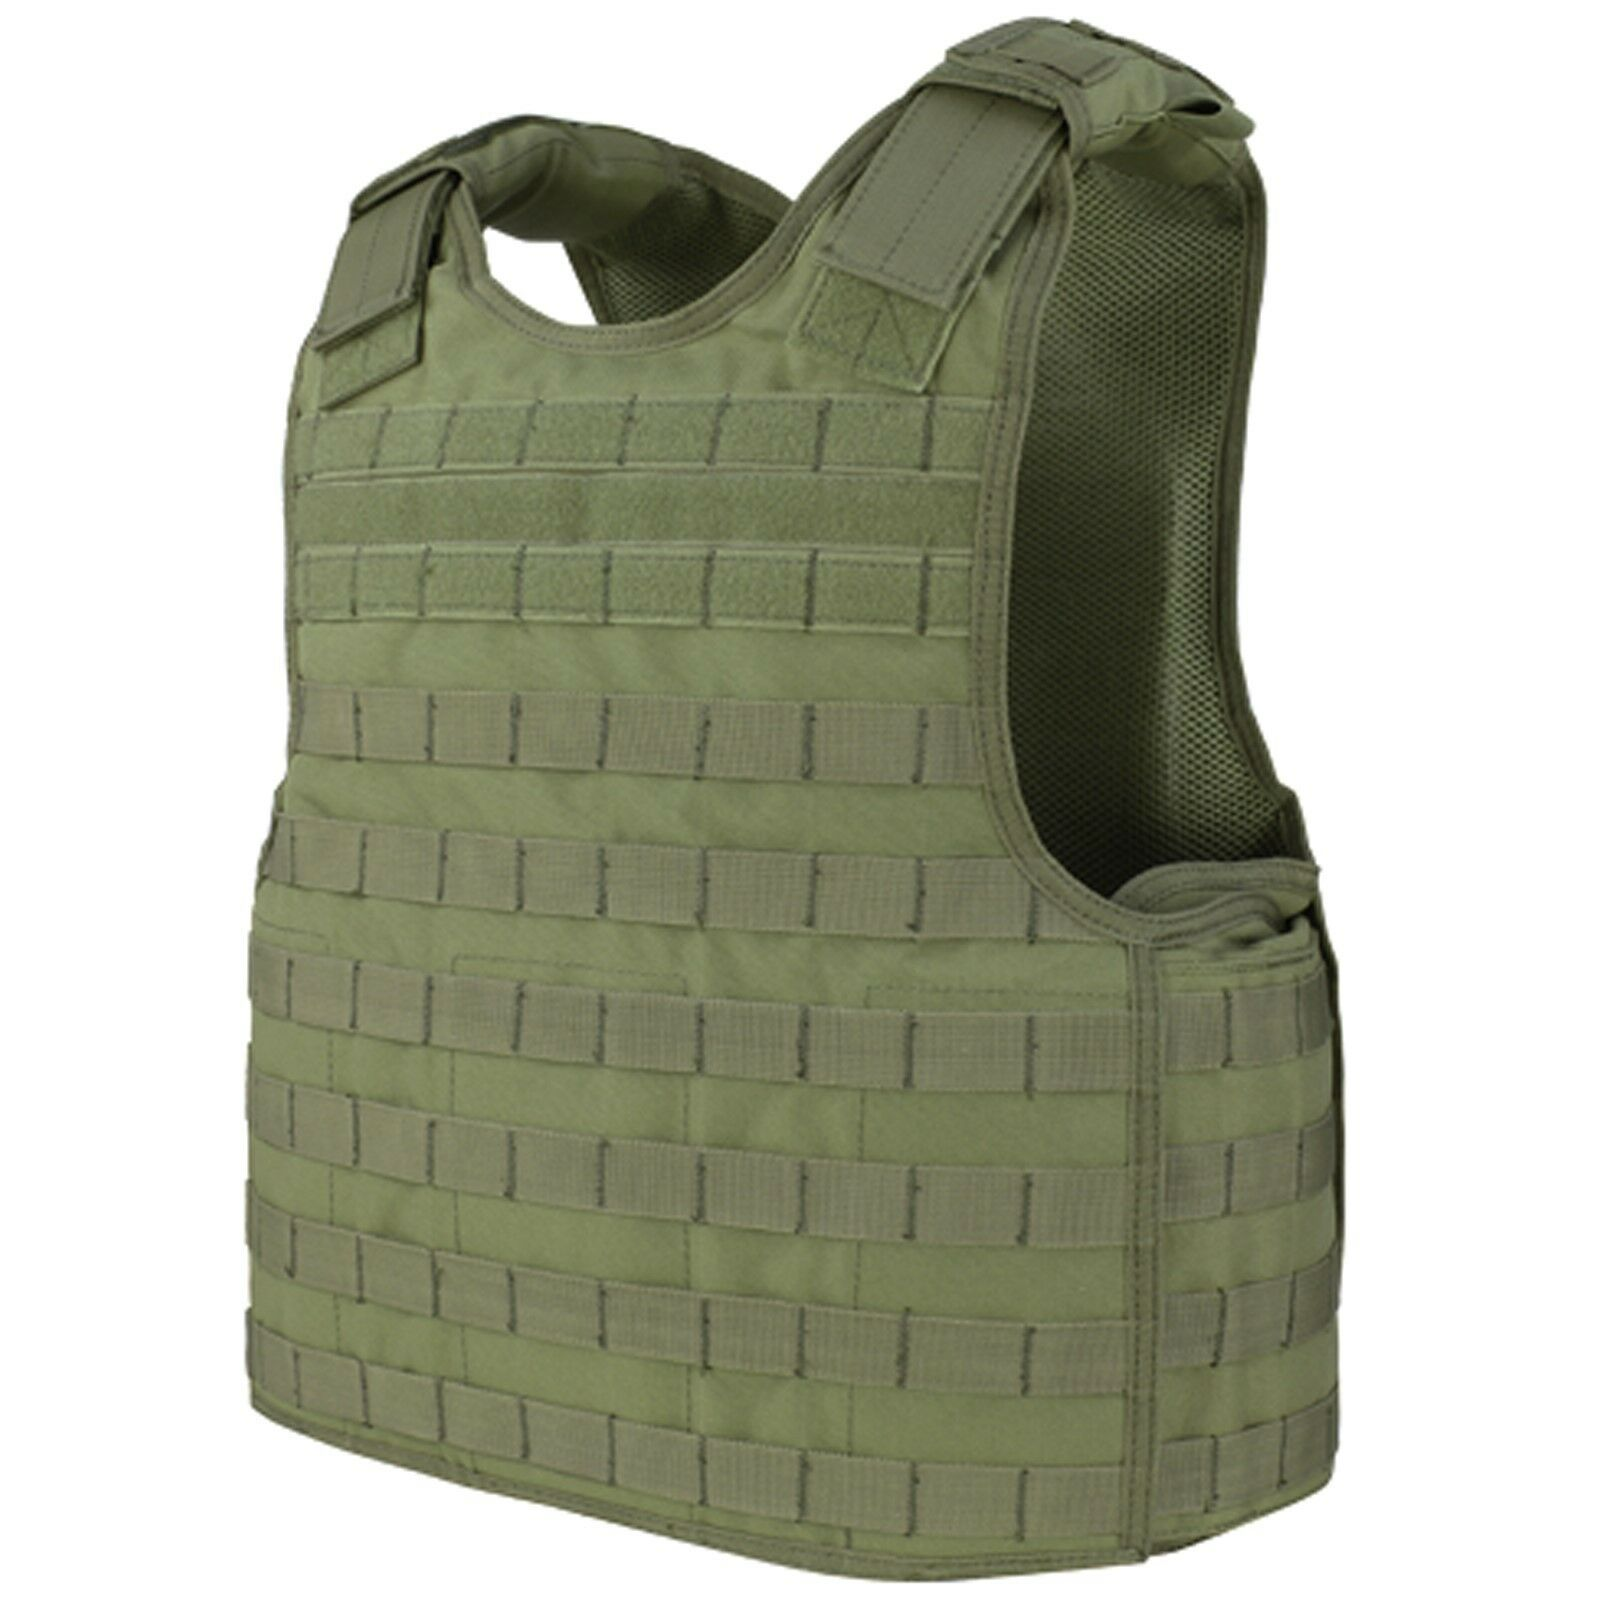 Condor DFPC OD Green MOLLE PALS Modular BALCS SPEAR Defender Plate Carrier Vest